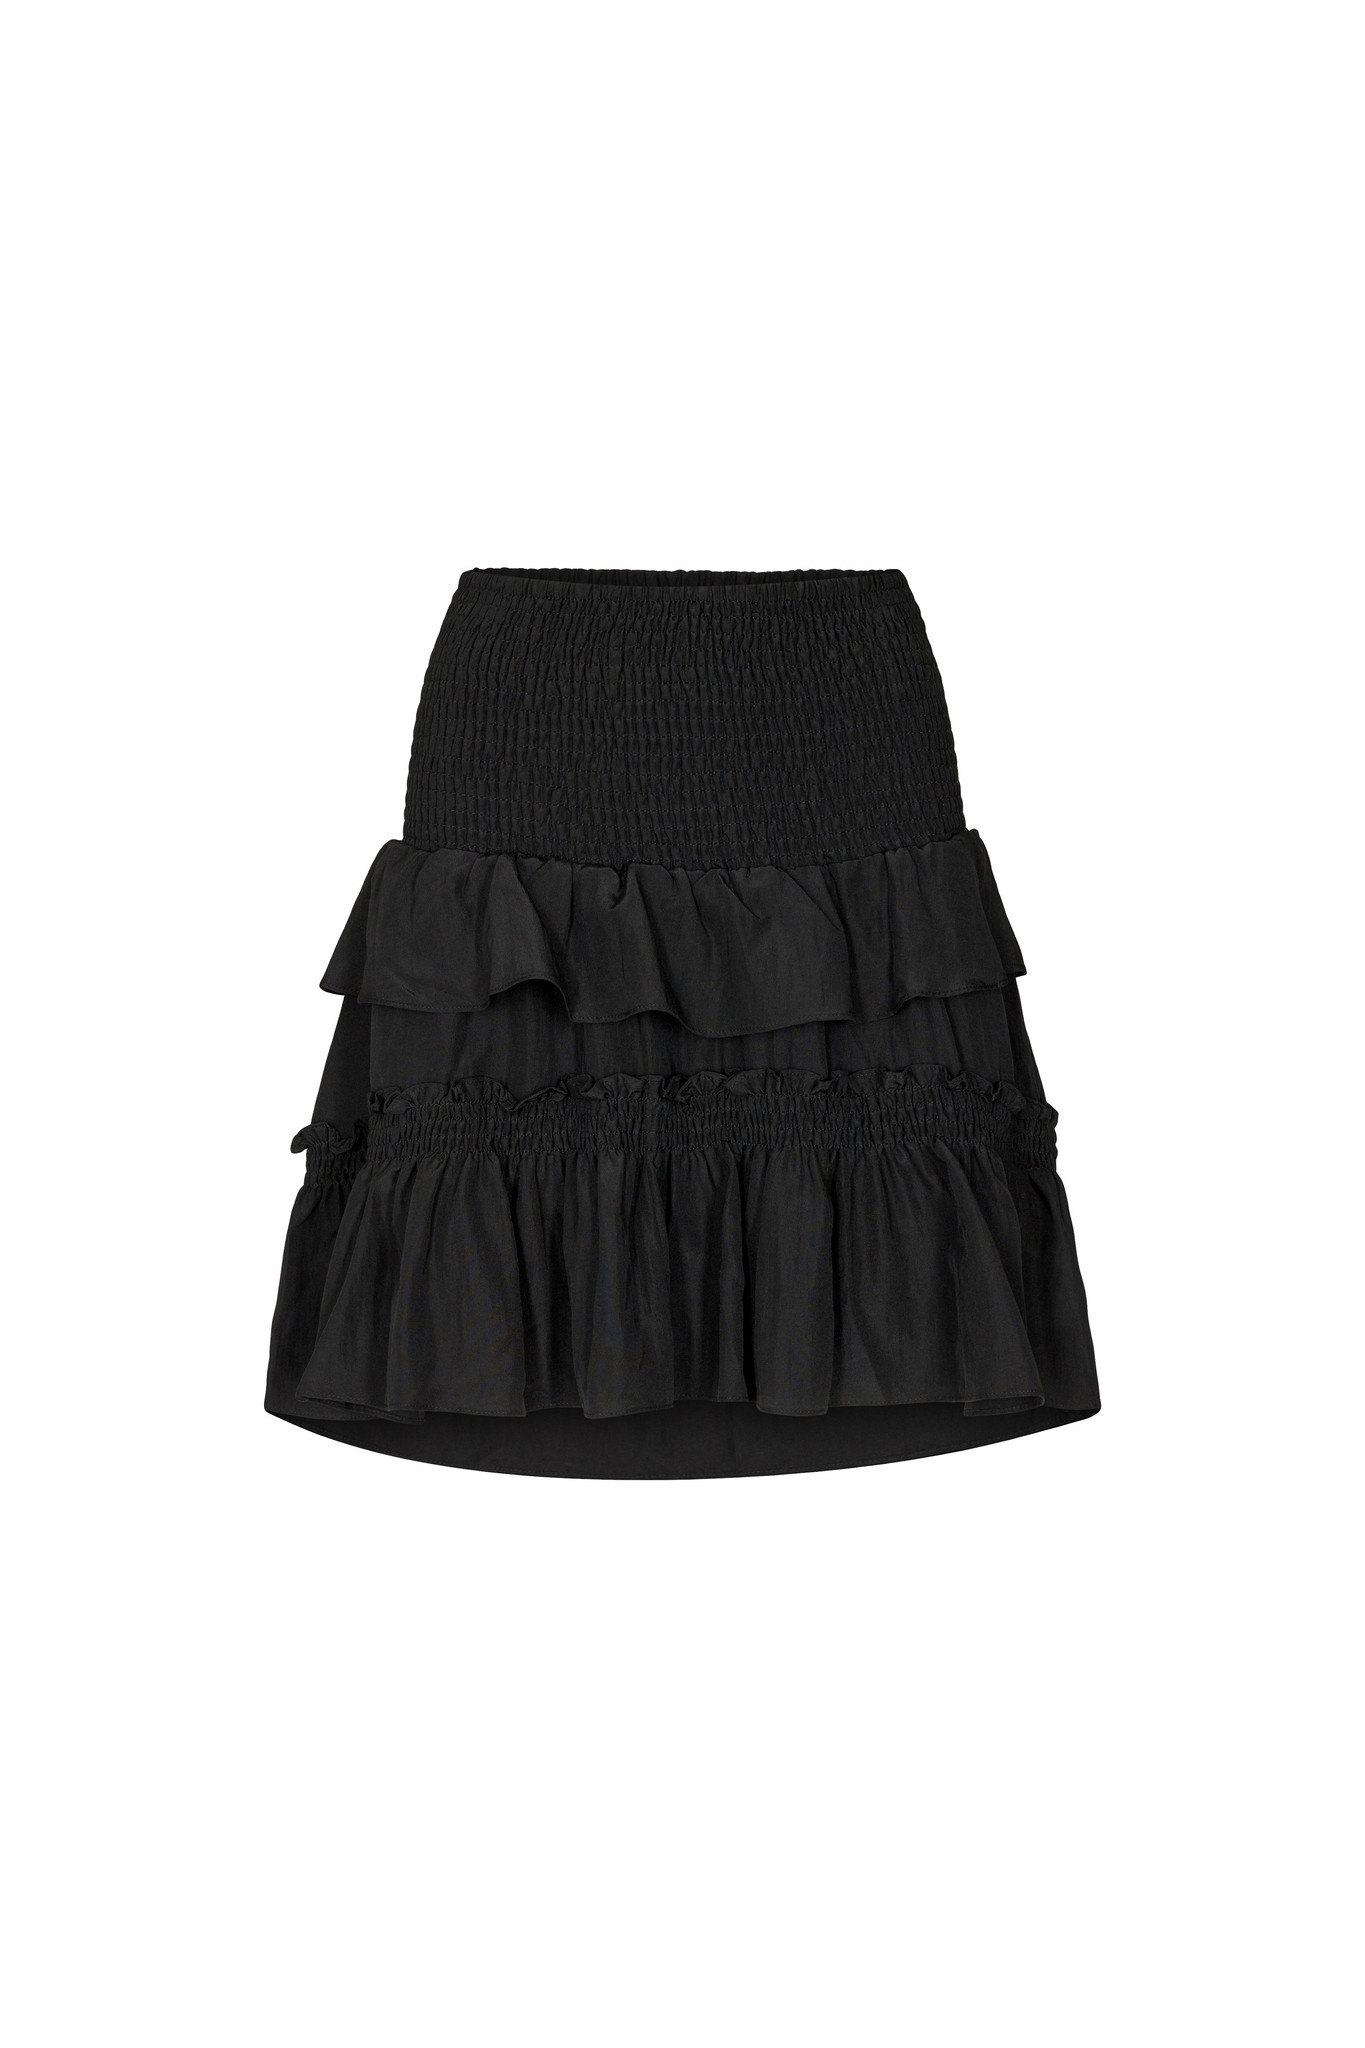 Keeva Smock Skirt - Black-1